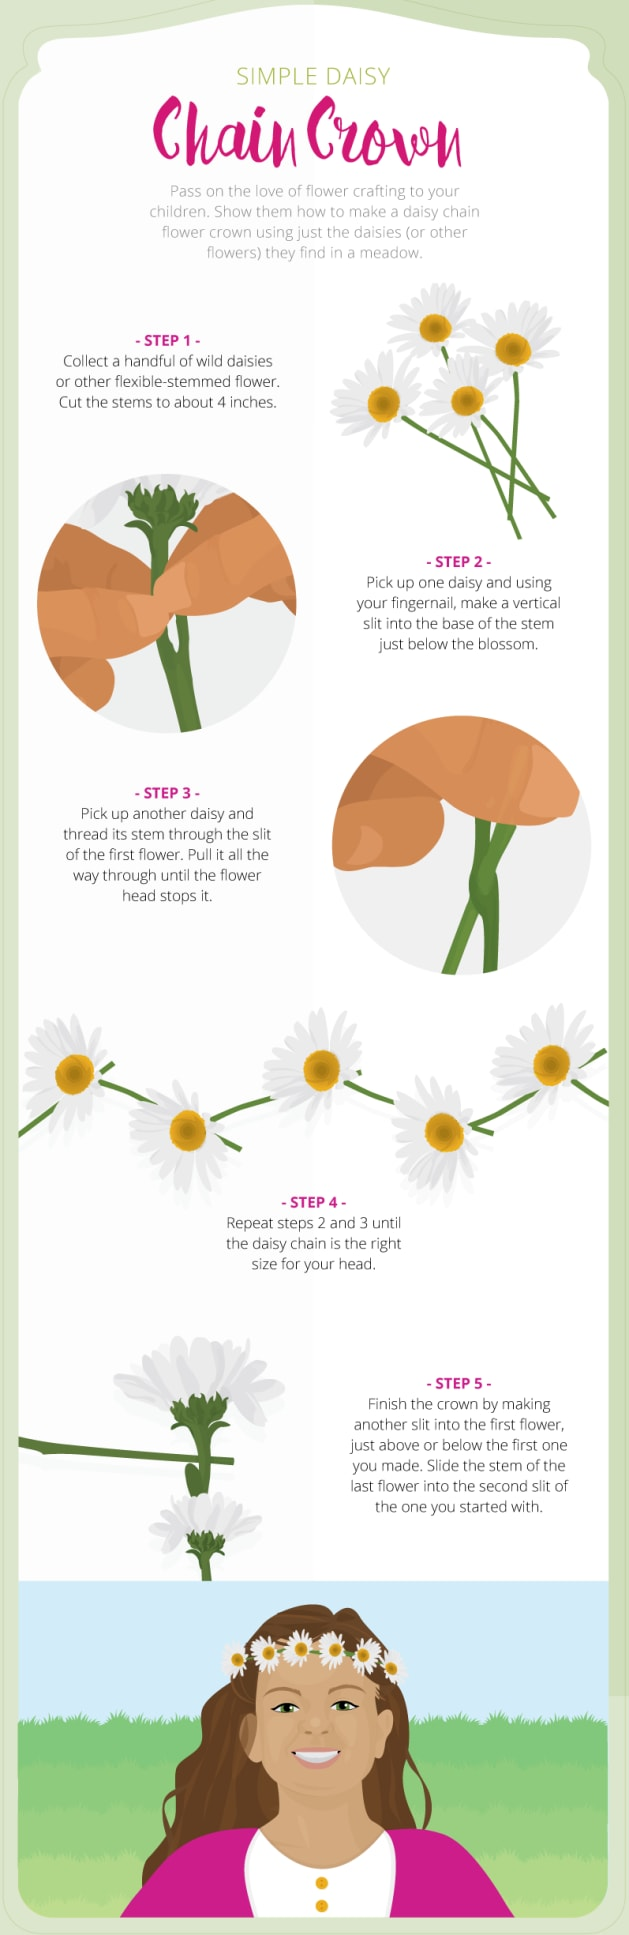 How to make a flower crown a step by step guide huffpost australia easy fix izmirmasajfo